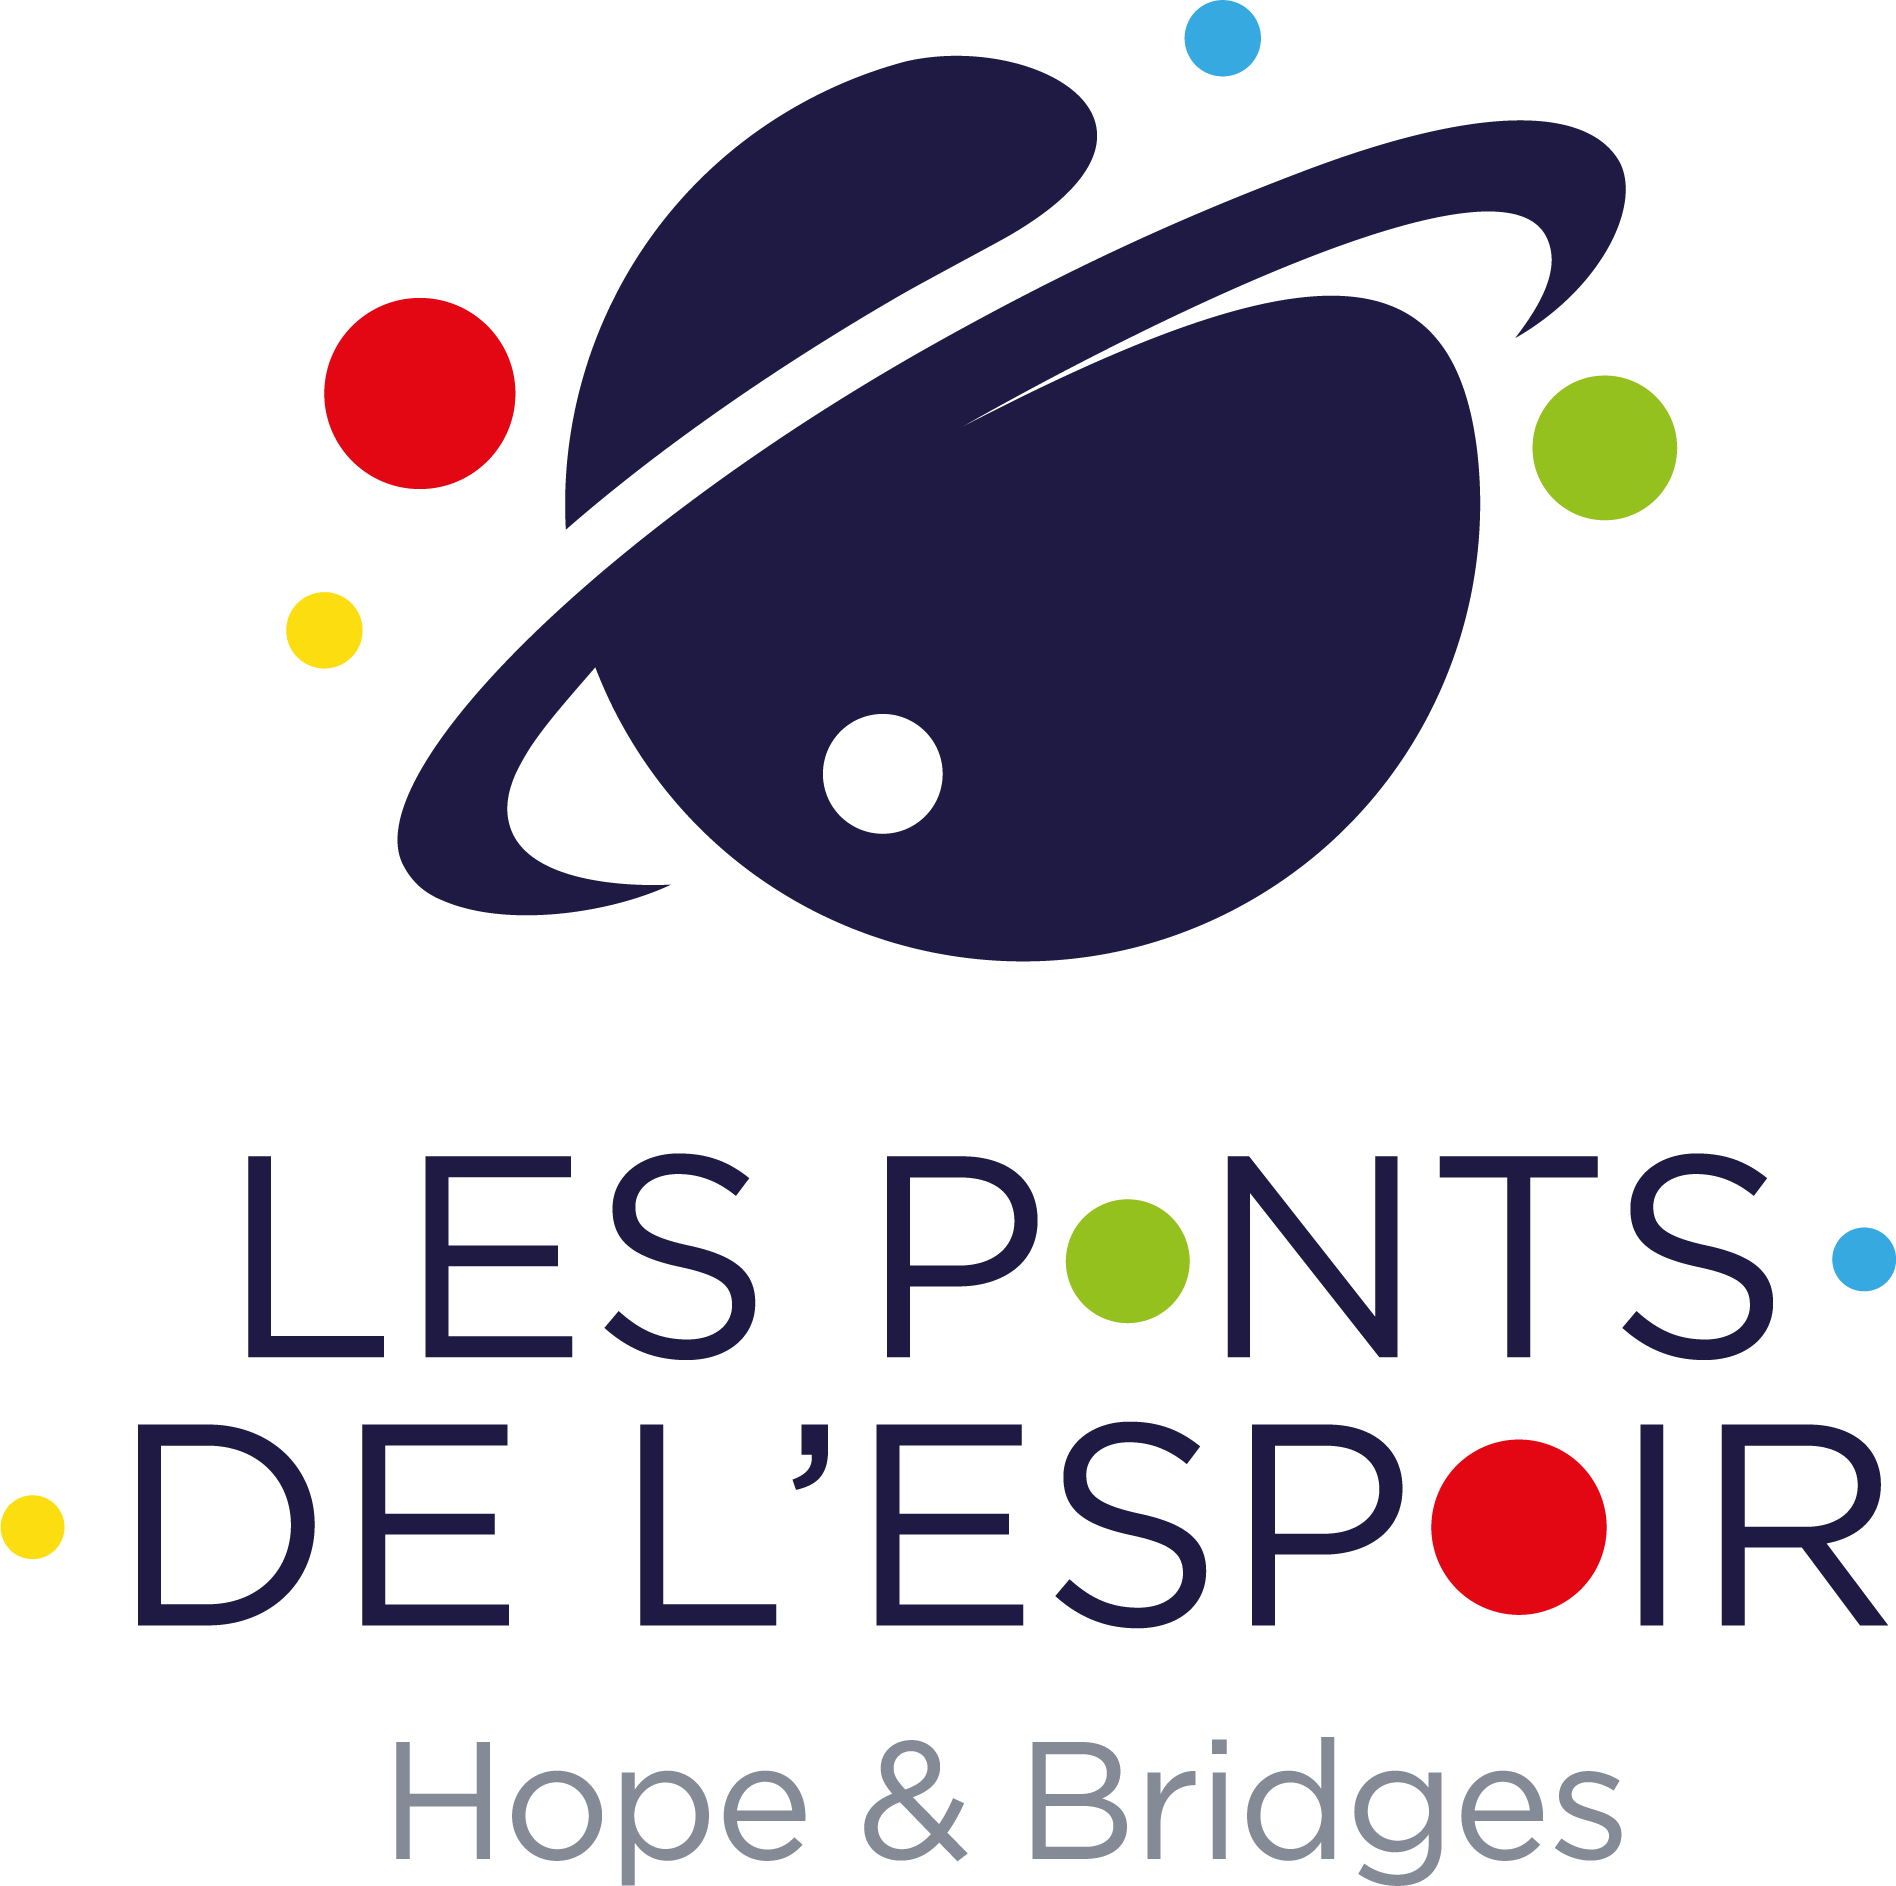 Association - Les Ponts de l'Espoir (Hope & Bridges)